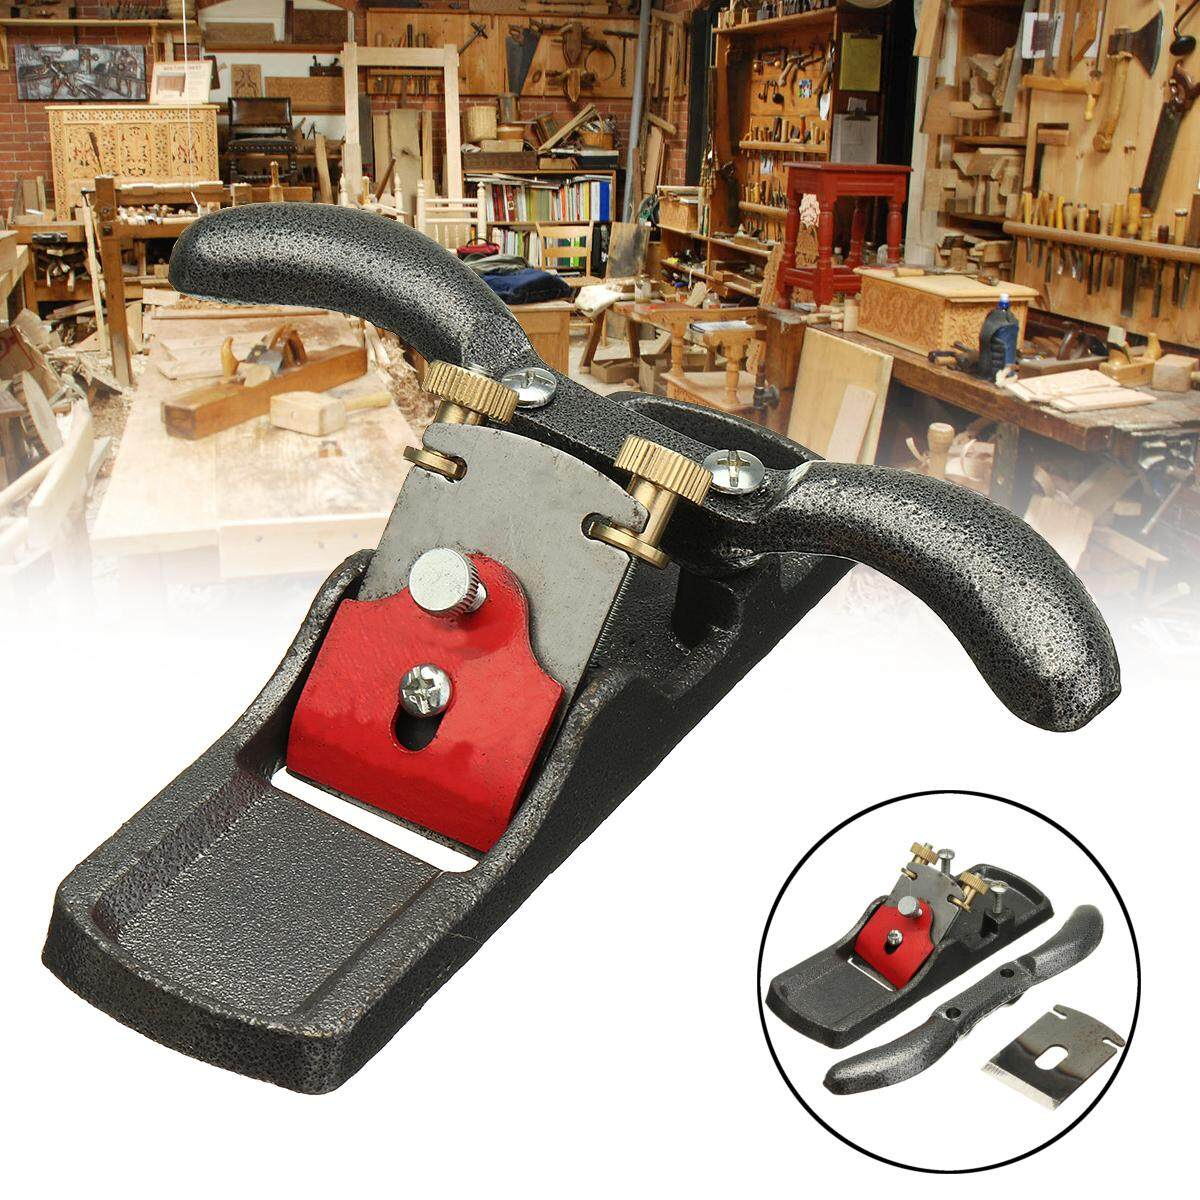 【Free Shipping + Flash Deal】Metal Woodworking Blade Spoke Shave Manual Planer Plane Deburring Hand Tools